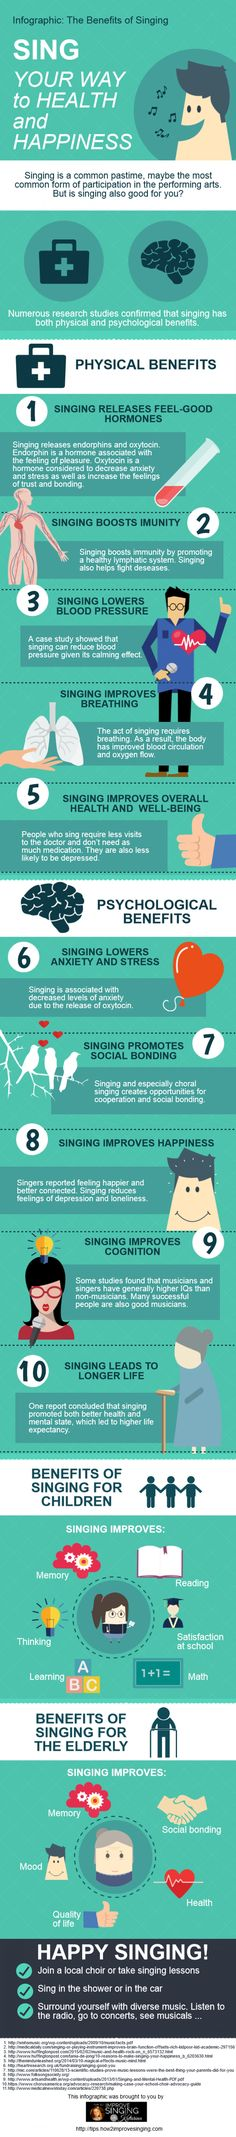 The Benefits of Singing Infographic